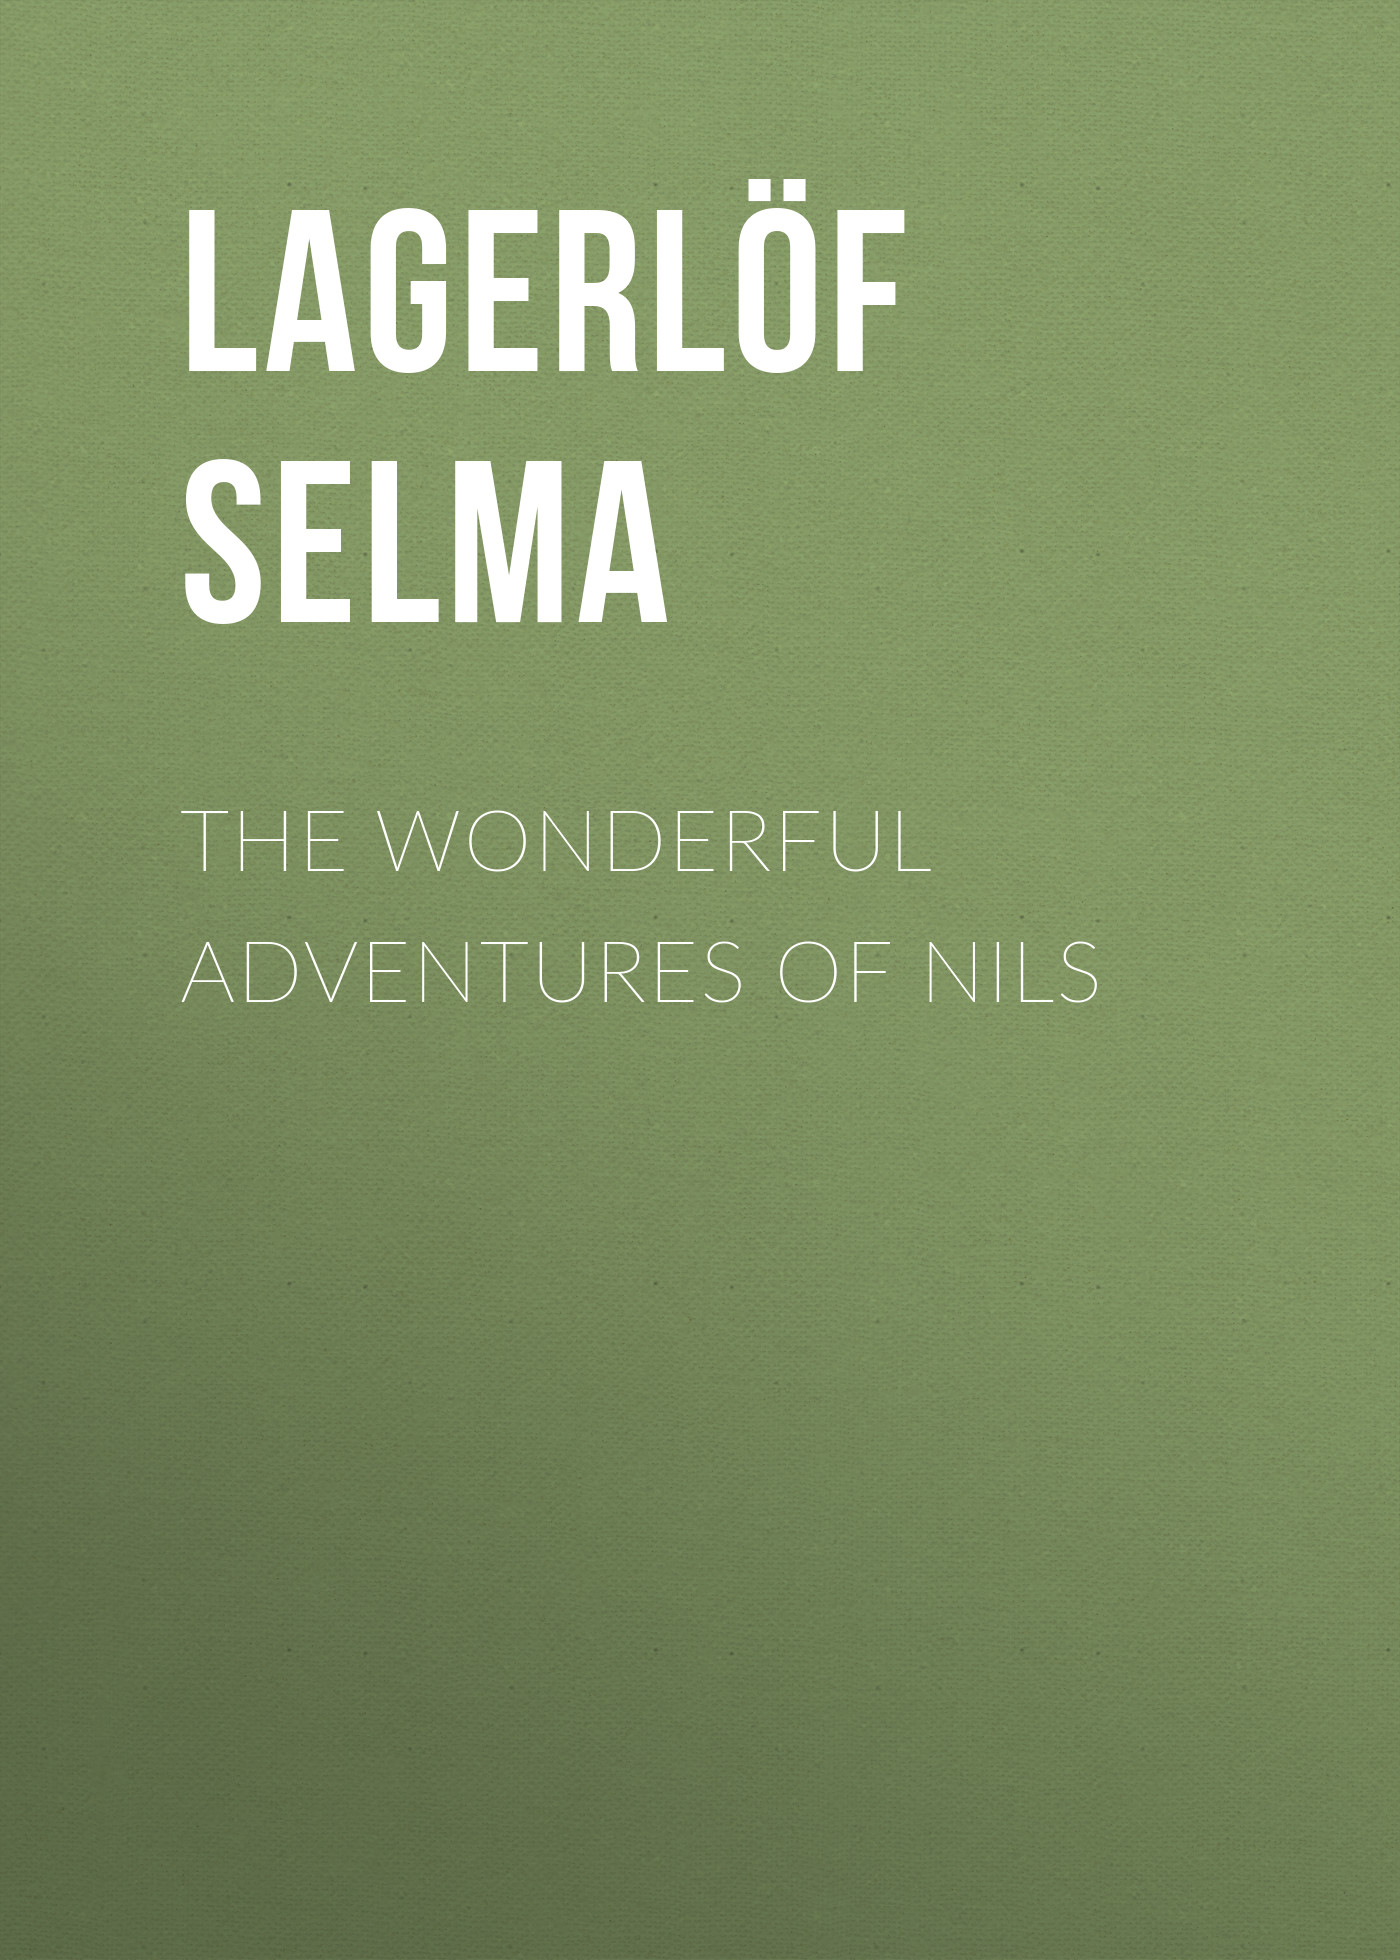 Lagerlöf Selma The Wonderful Adventures of Nils